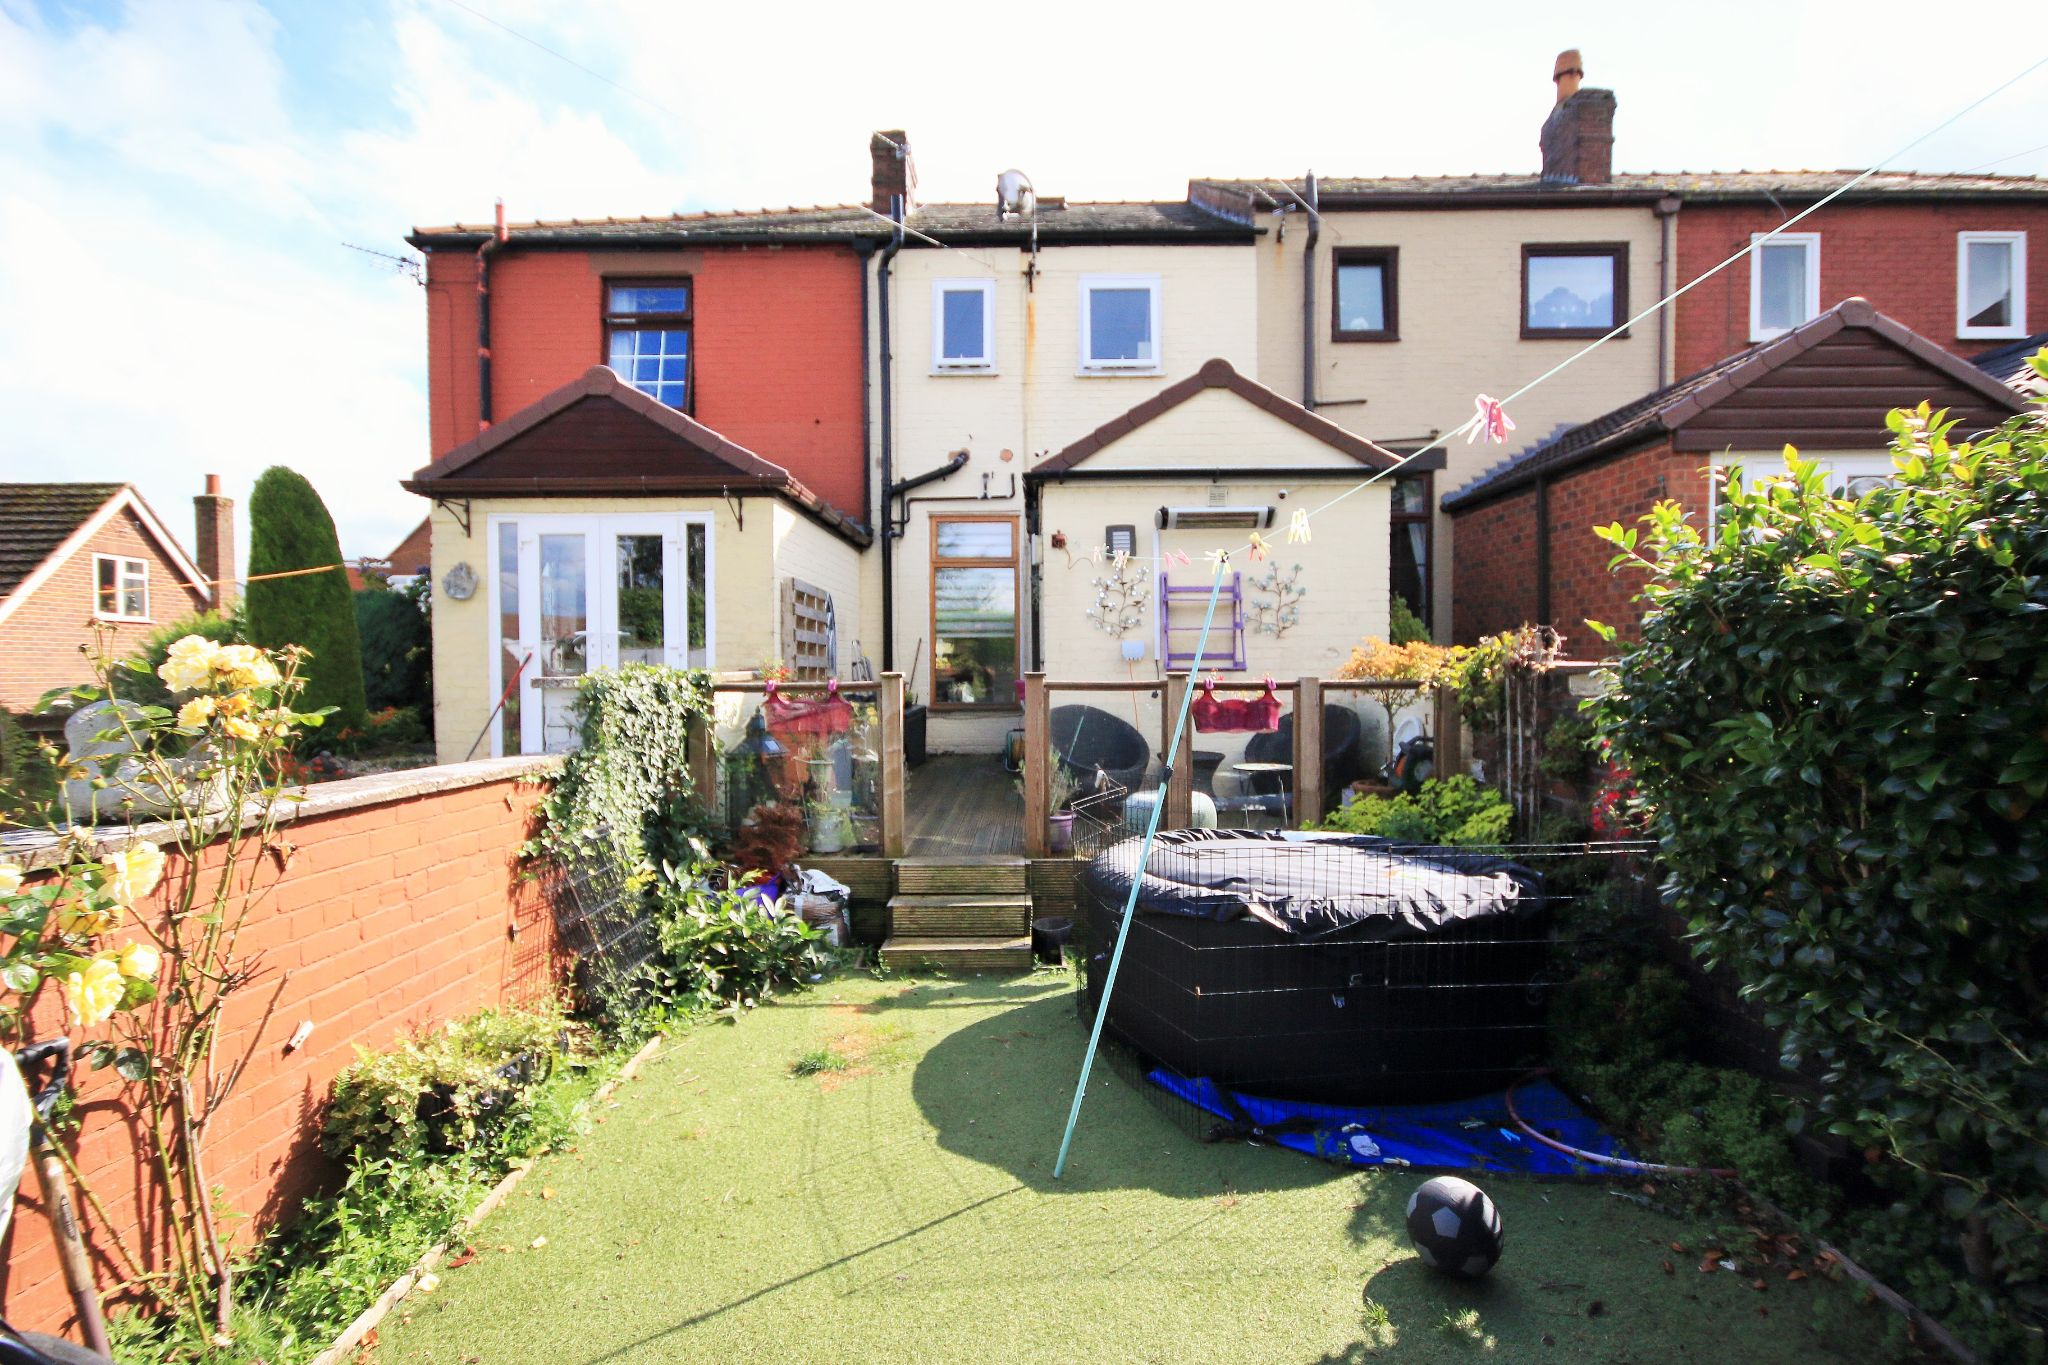 2 Bedroom Mid Terraced House For Sale - Photograph 13